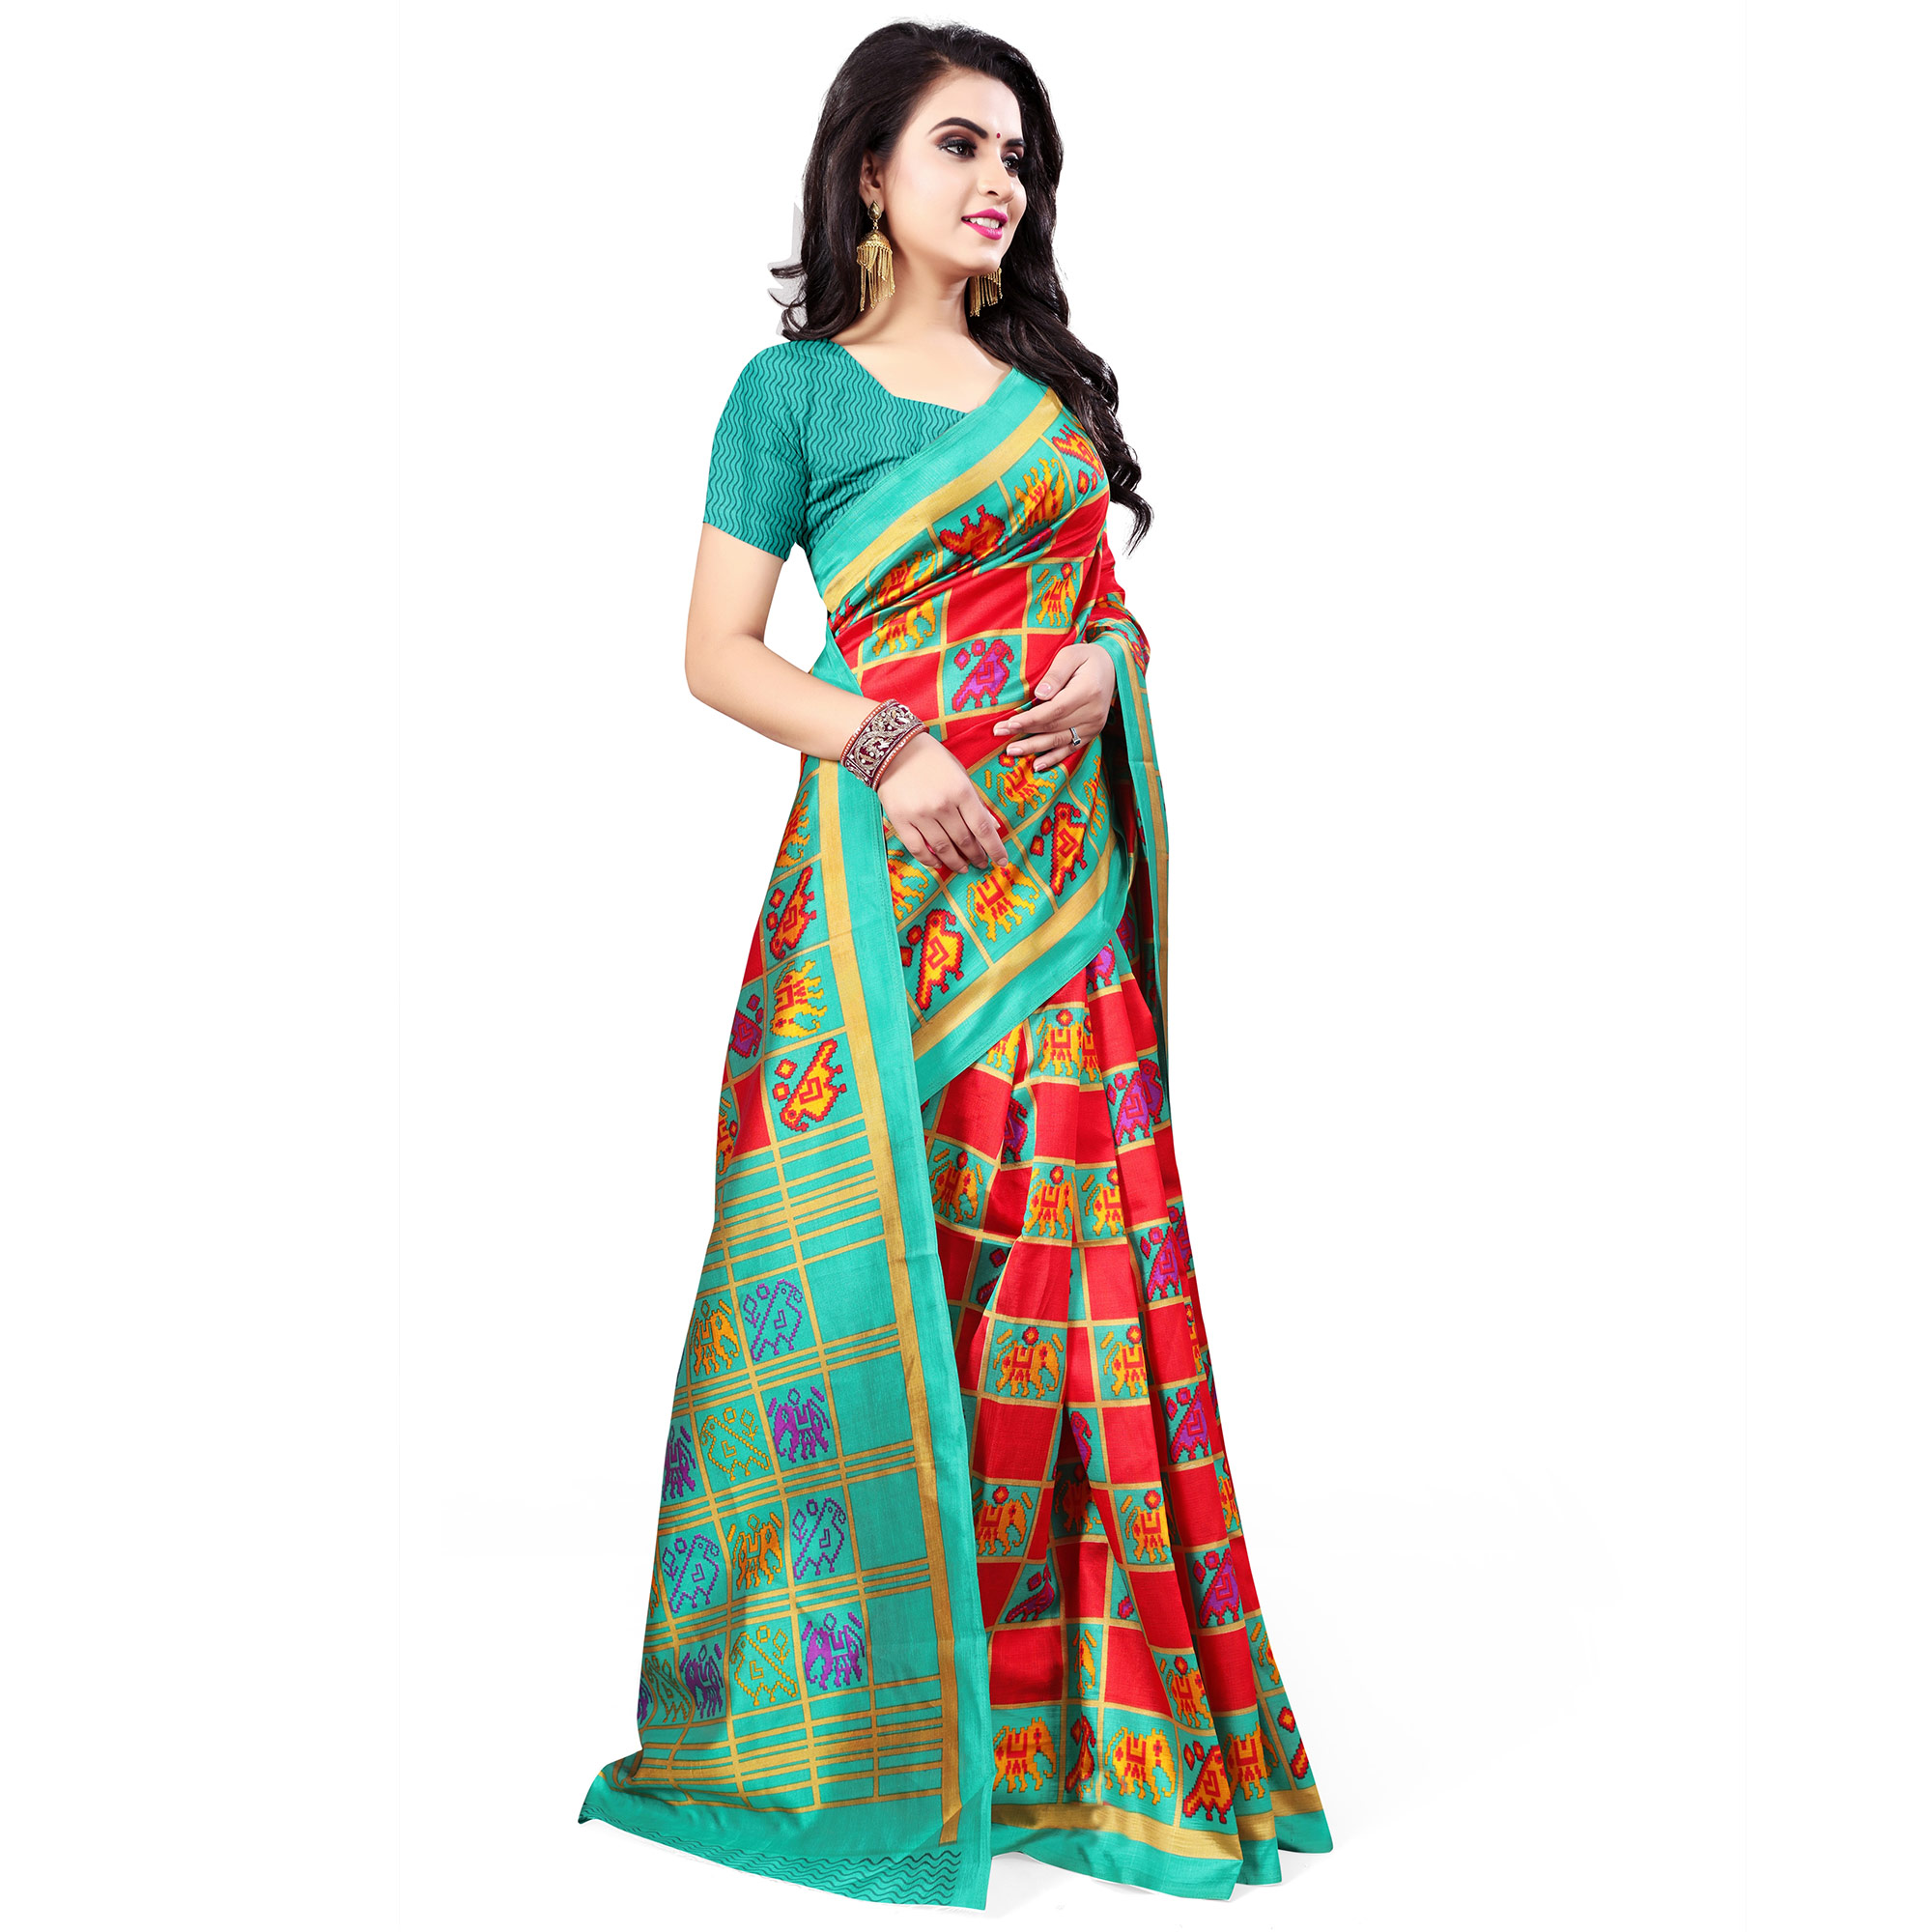 Gleaming Red - Turquoise Green Colored Casual Wear Printed Bhagalpuri Silk Saree